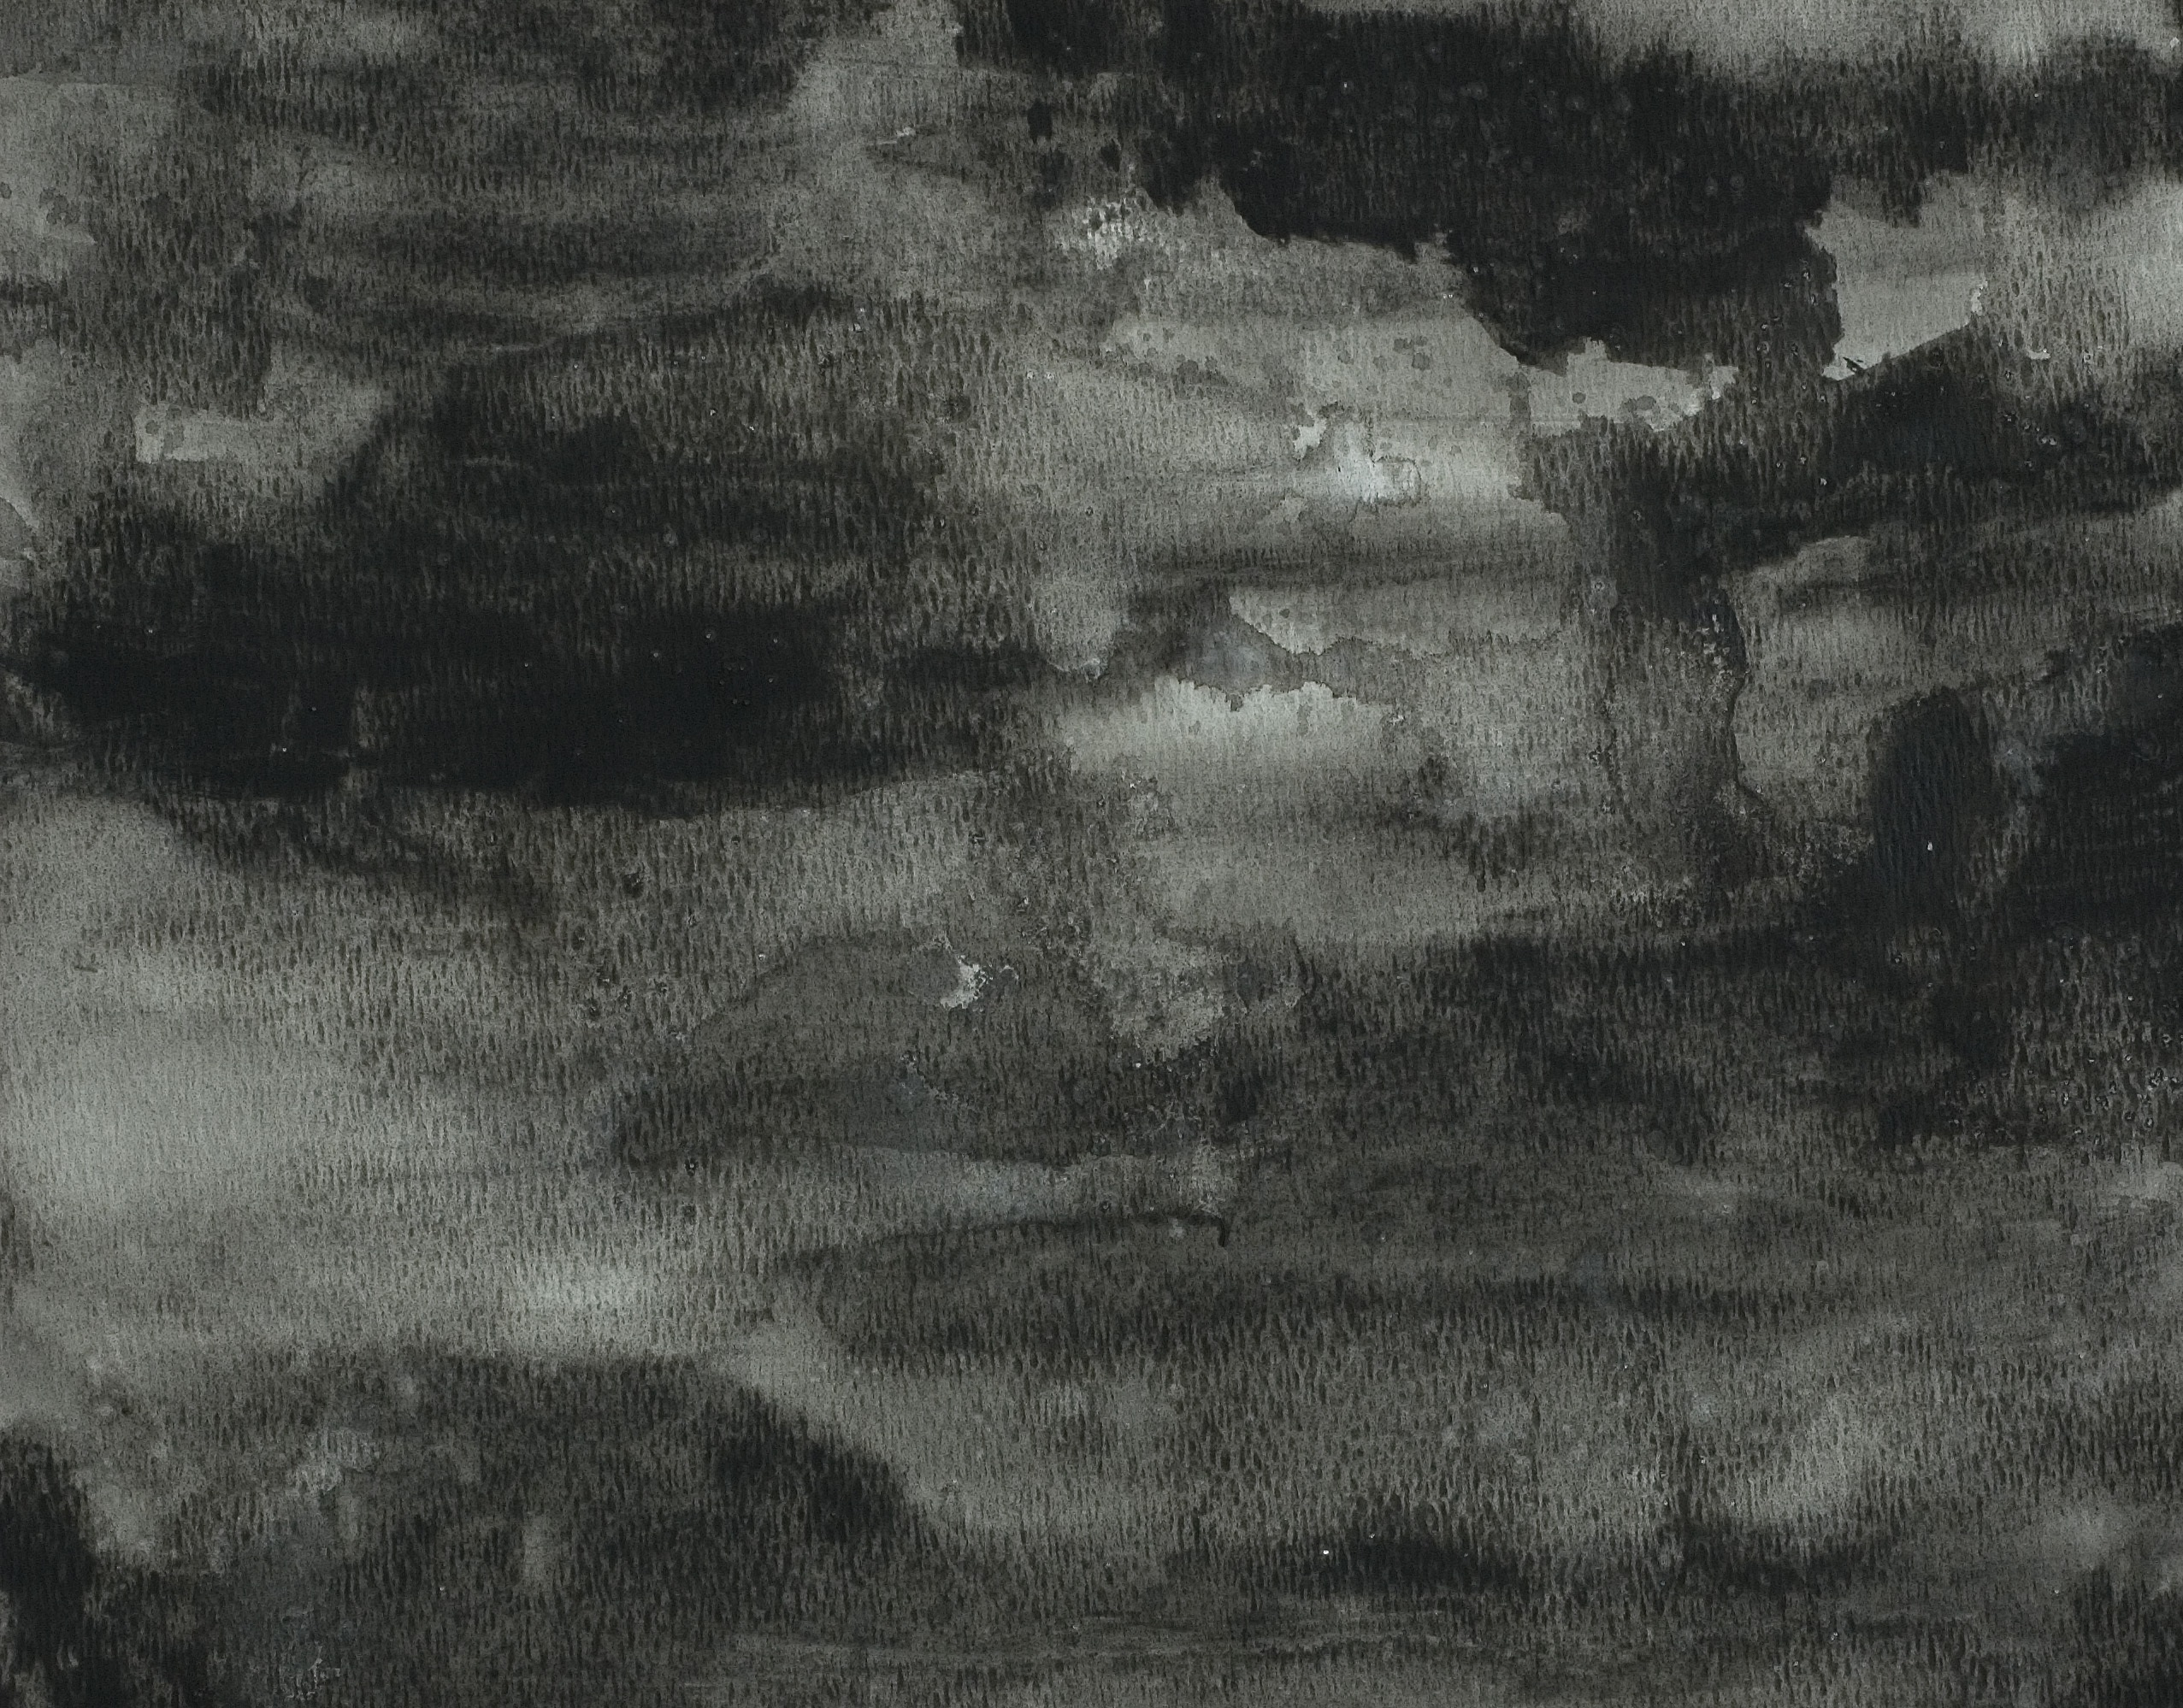 2553x1998 Free Images Water, Black And White, Texture, Wet, Wall, Brush